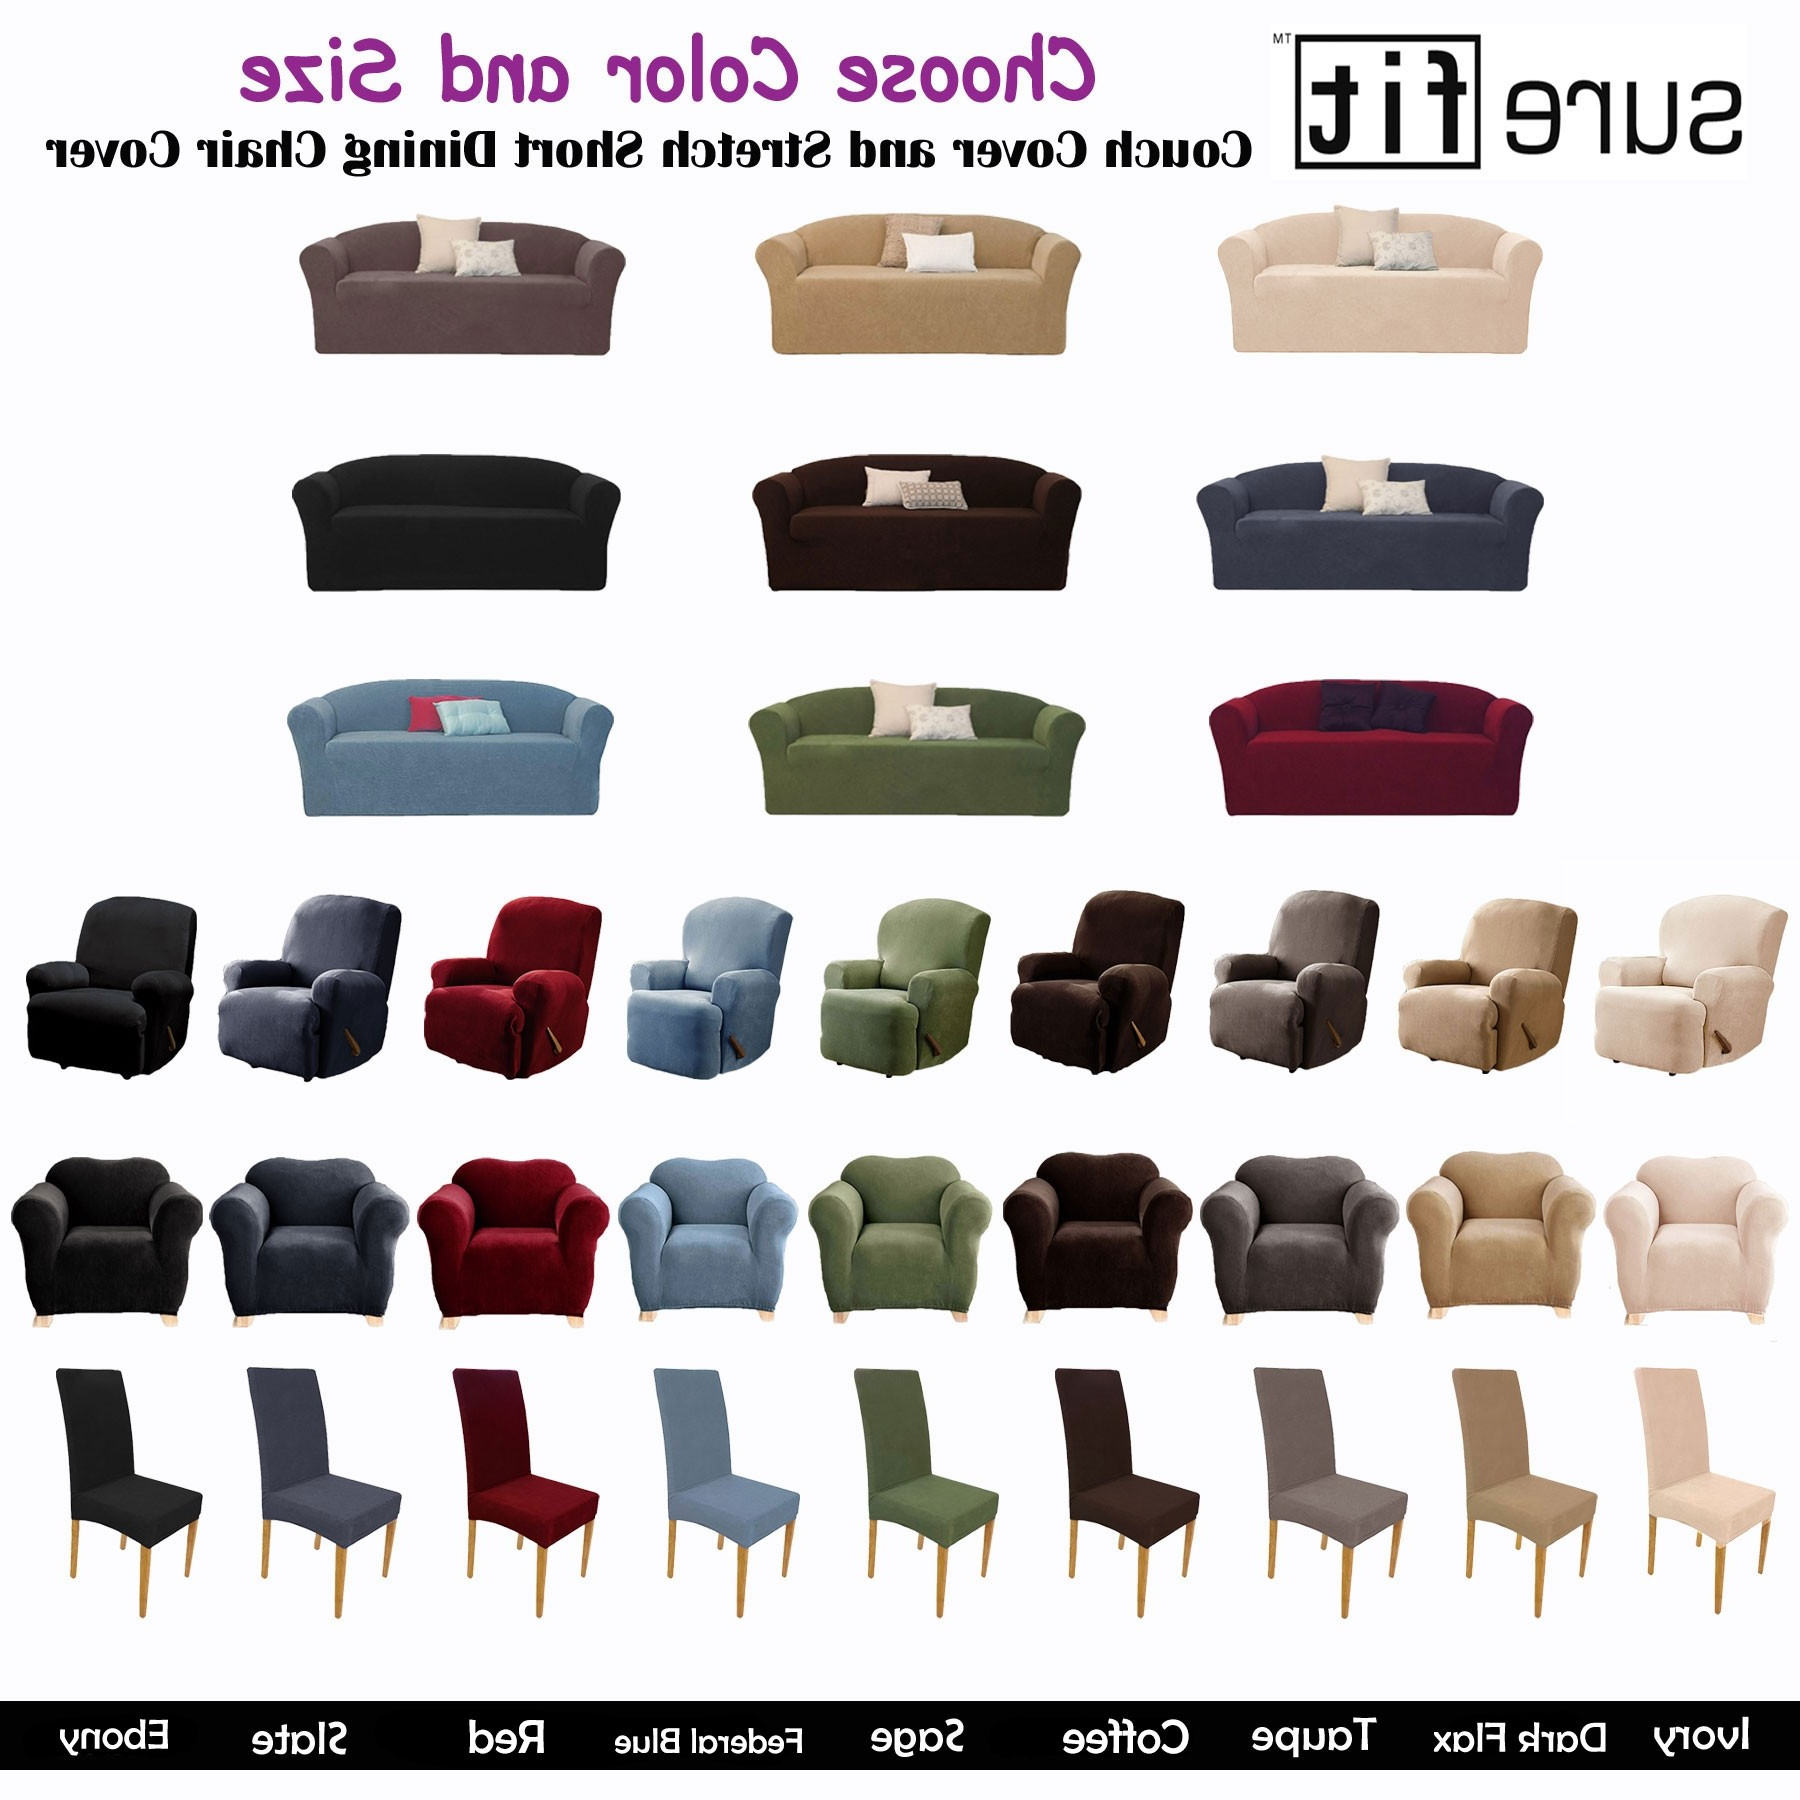 Stretch Sofa Slipcovers Australia At Regarding Sofa And Chair Slipcovers (View 17 of 20)